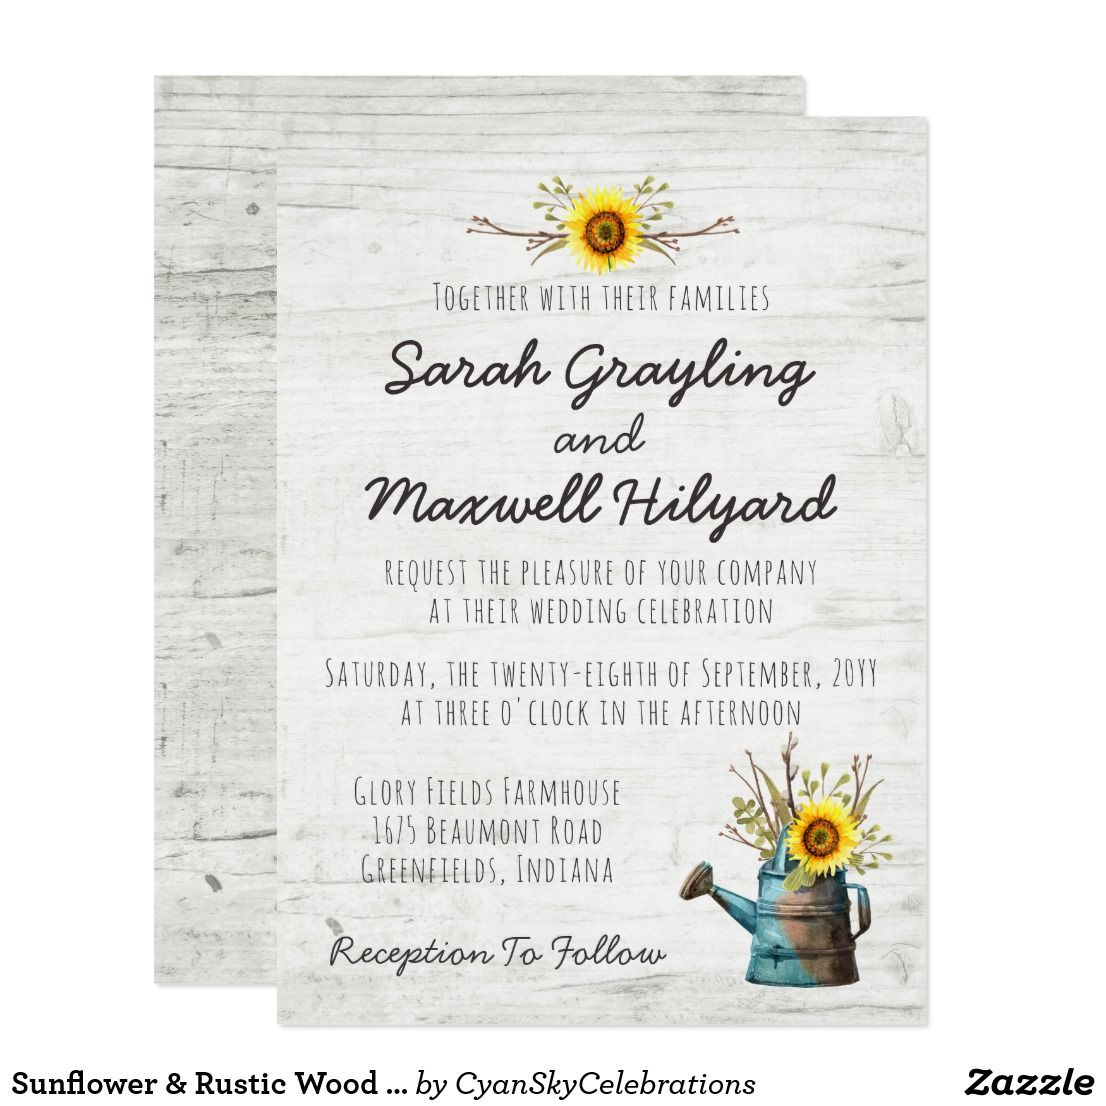 Sunflower & Rustic Wood Farm Wedding Invitation by CyanSkyCelebrations on Zazzle